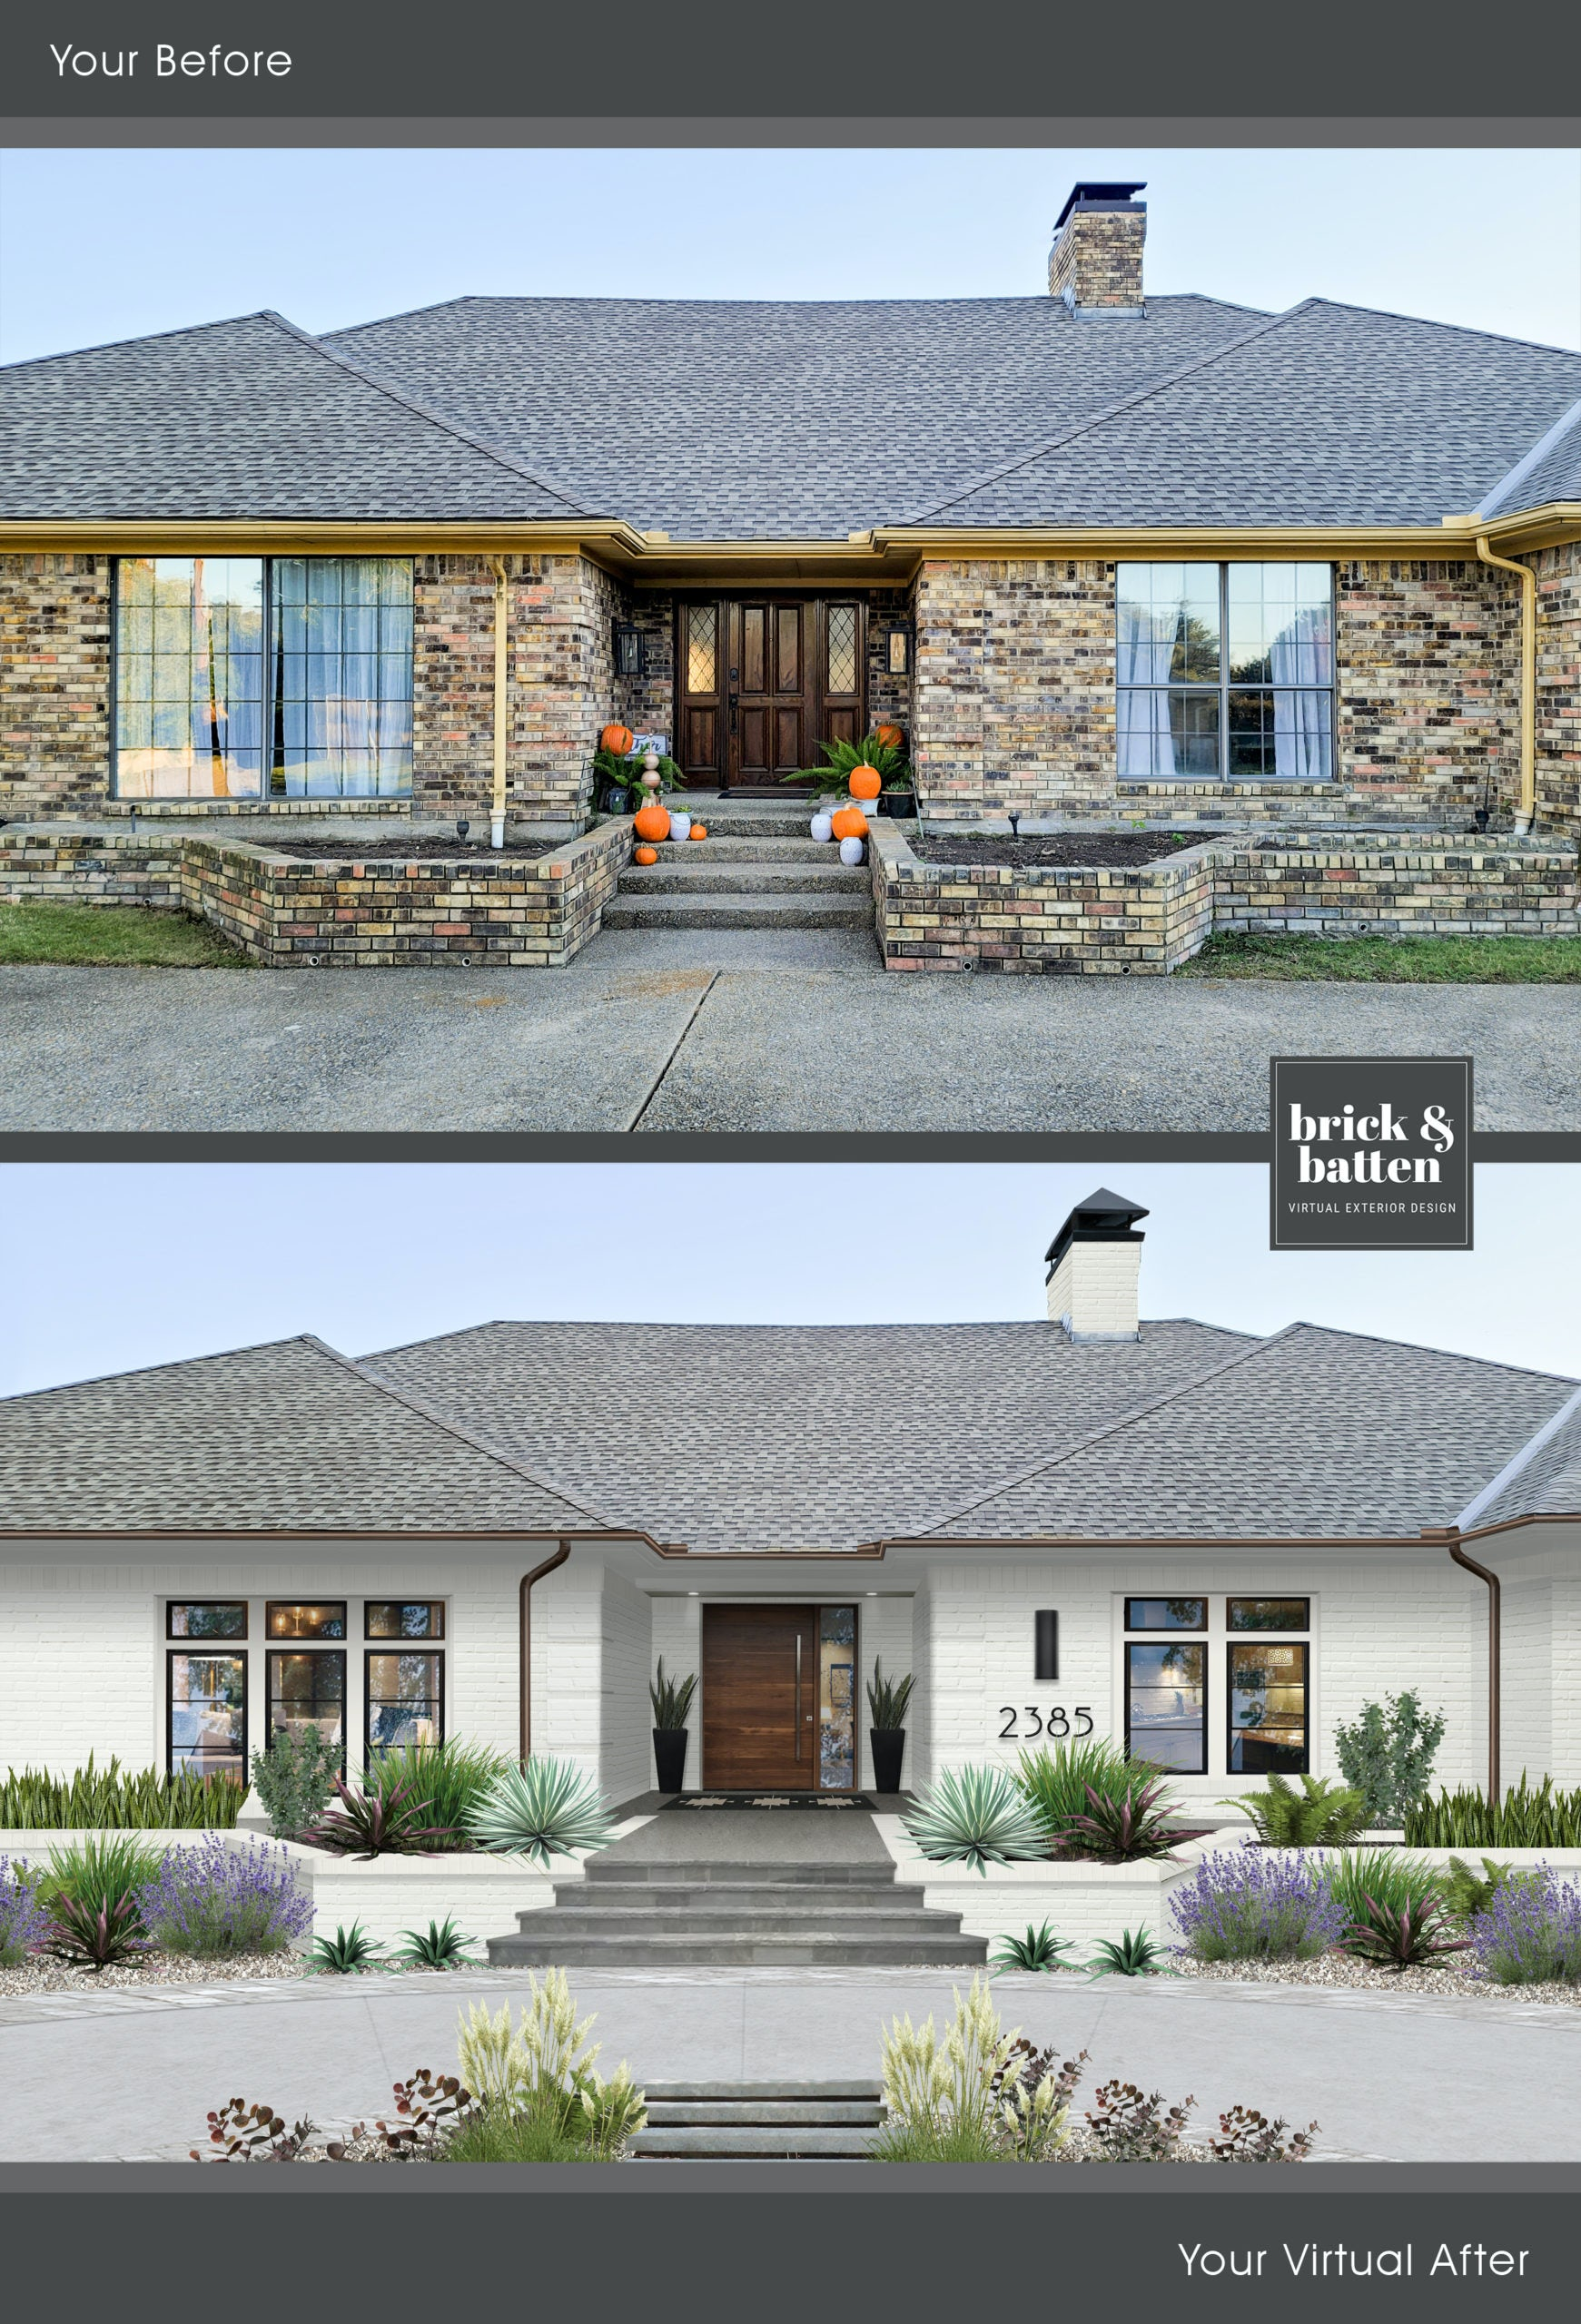 Before and after of a traditional brick home painted in Seapearl with copper gutters